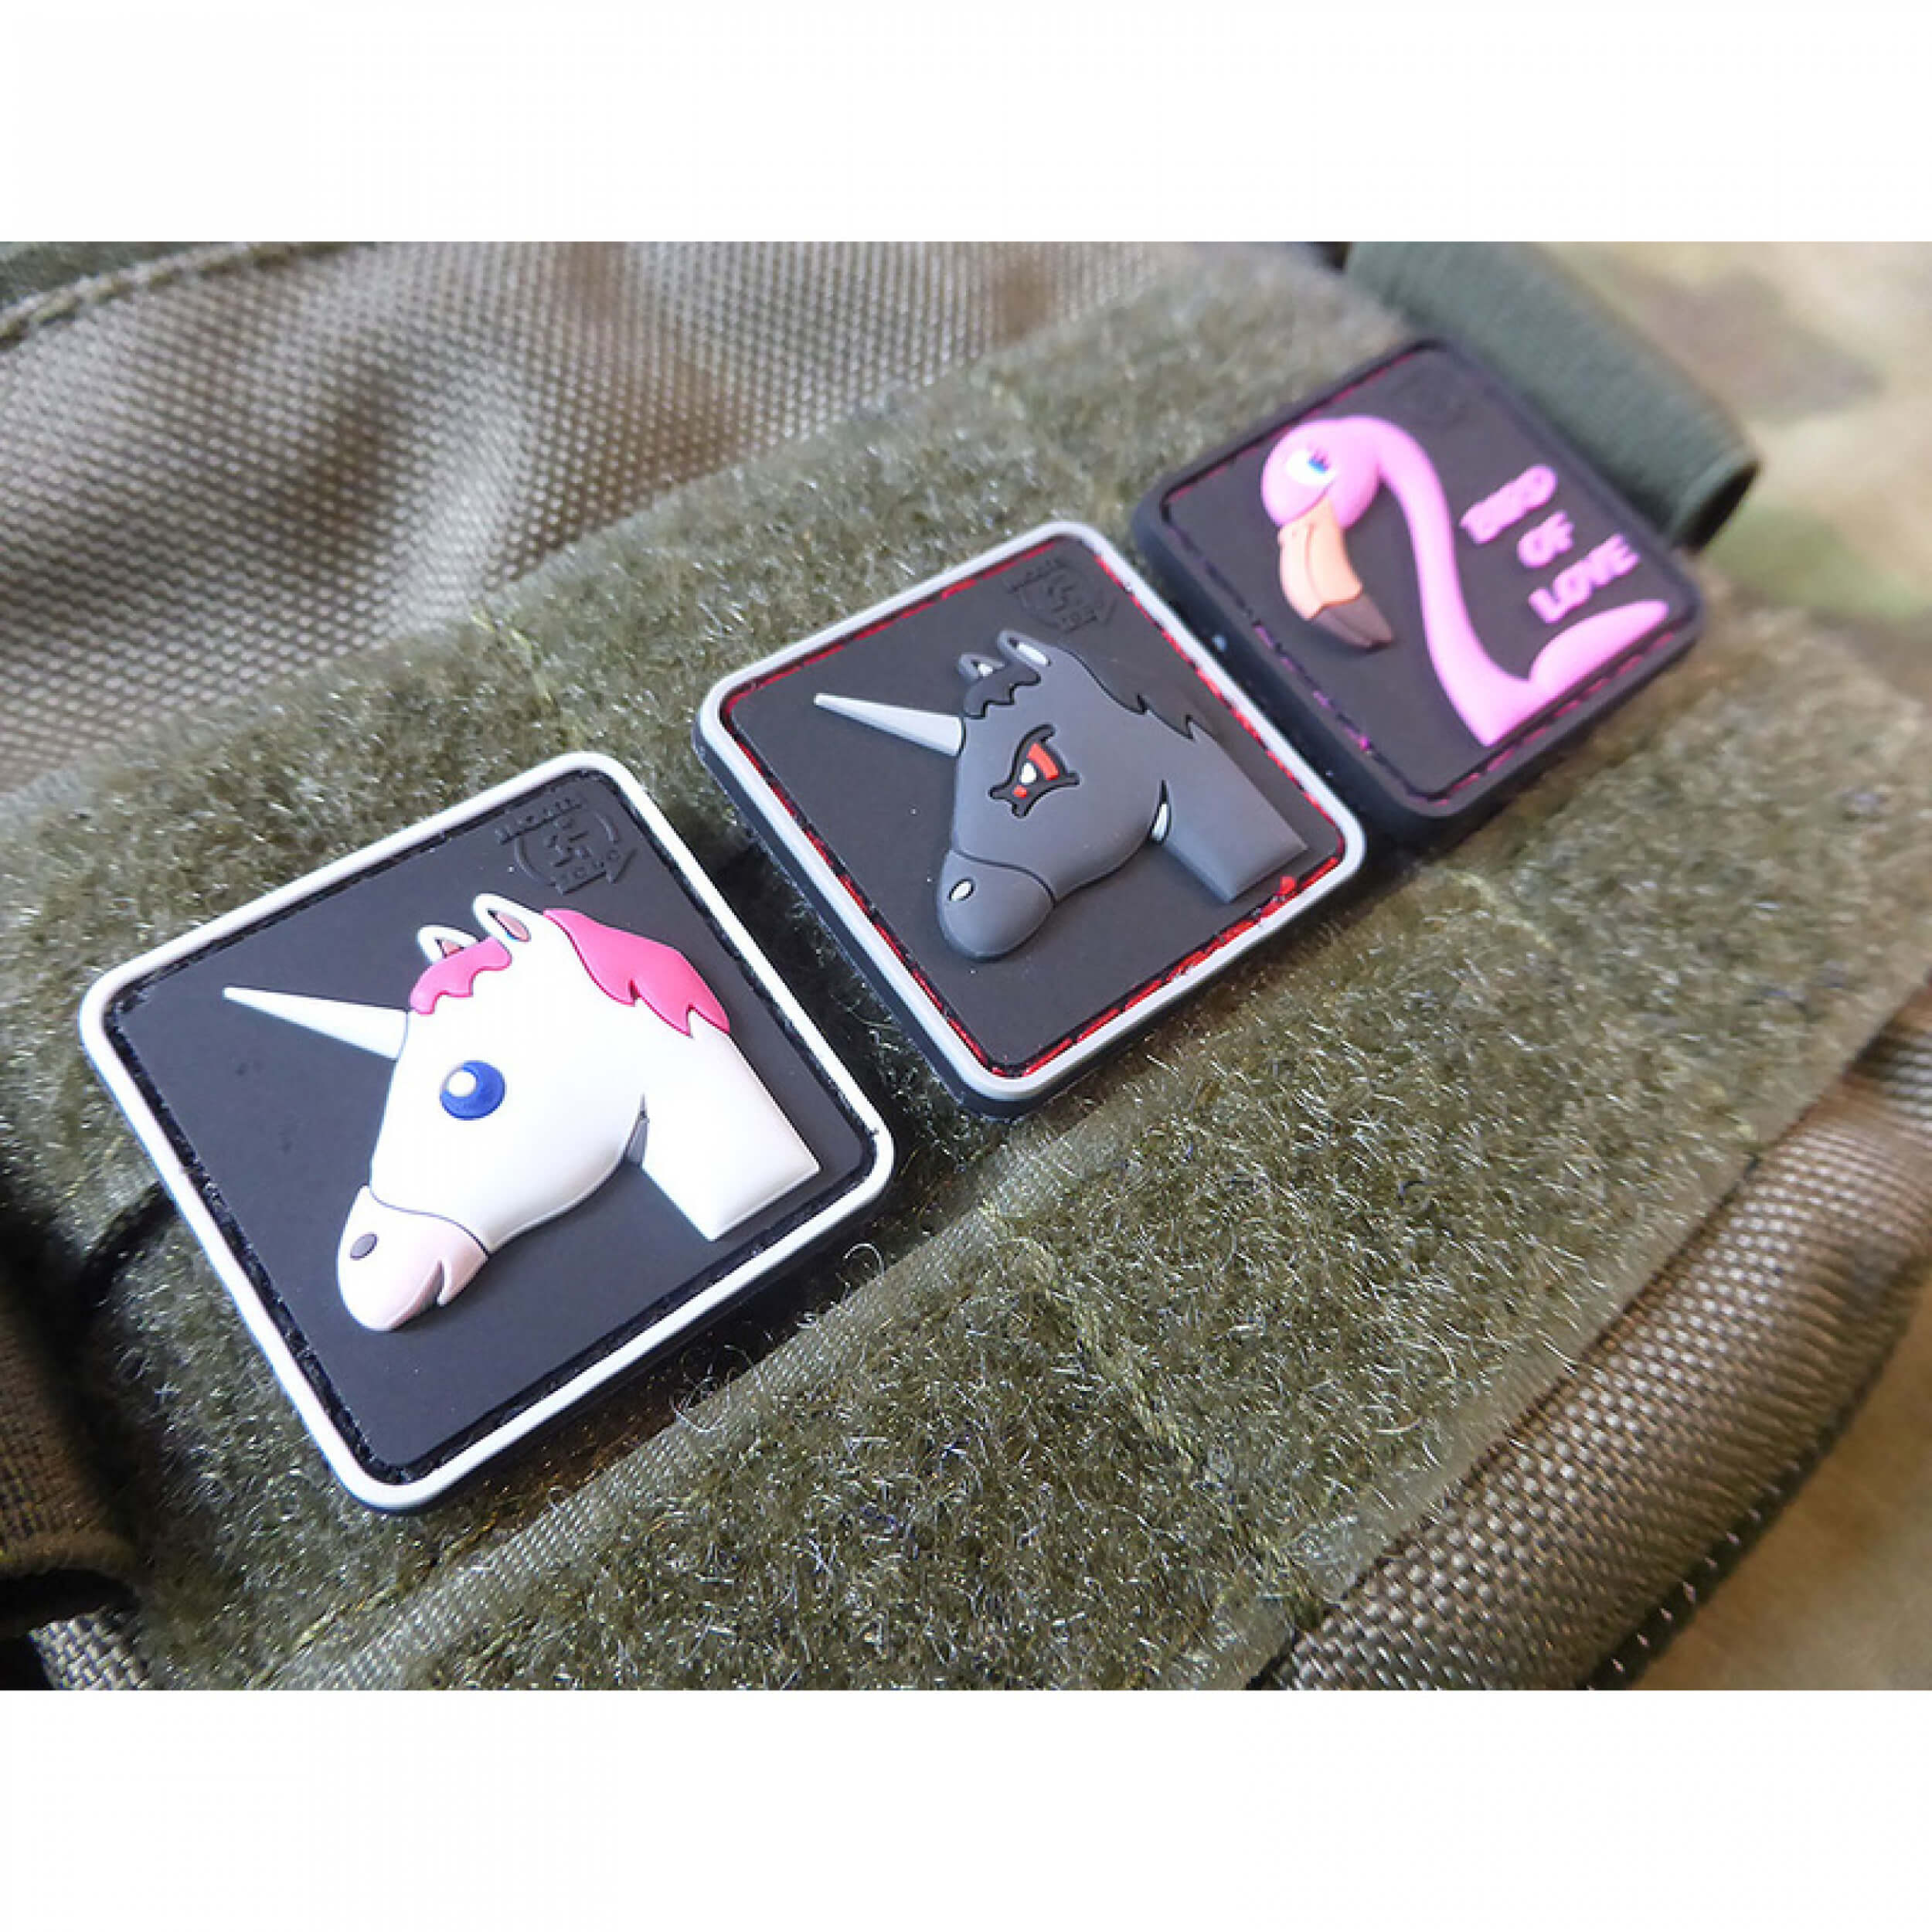 Flavour Unicorn Patch, strawberry aroma, delicately scented, limited edition